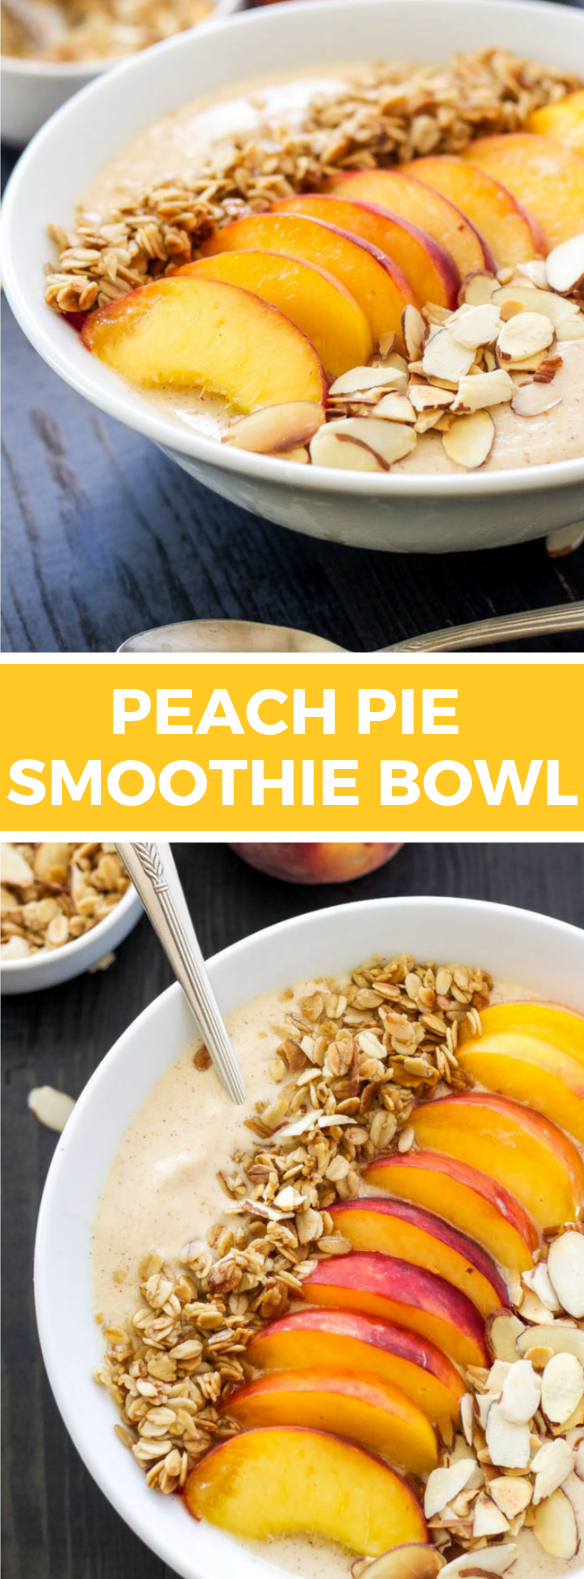 PEACH PIE SMOOTHIE BOWL #healthydiet #breakfast